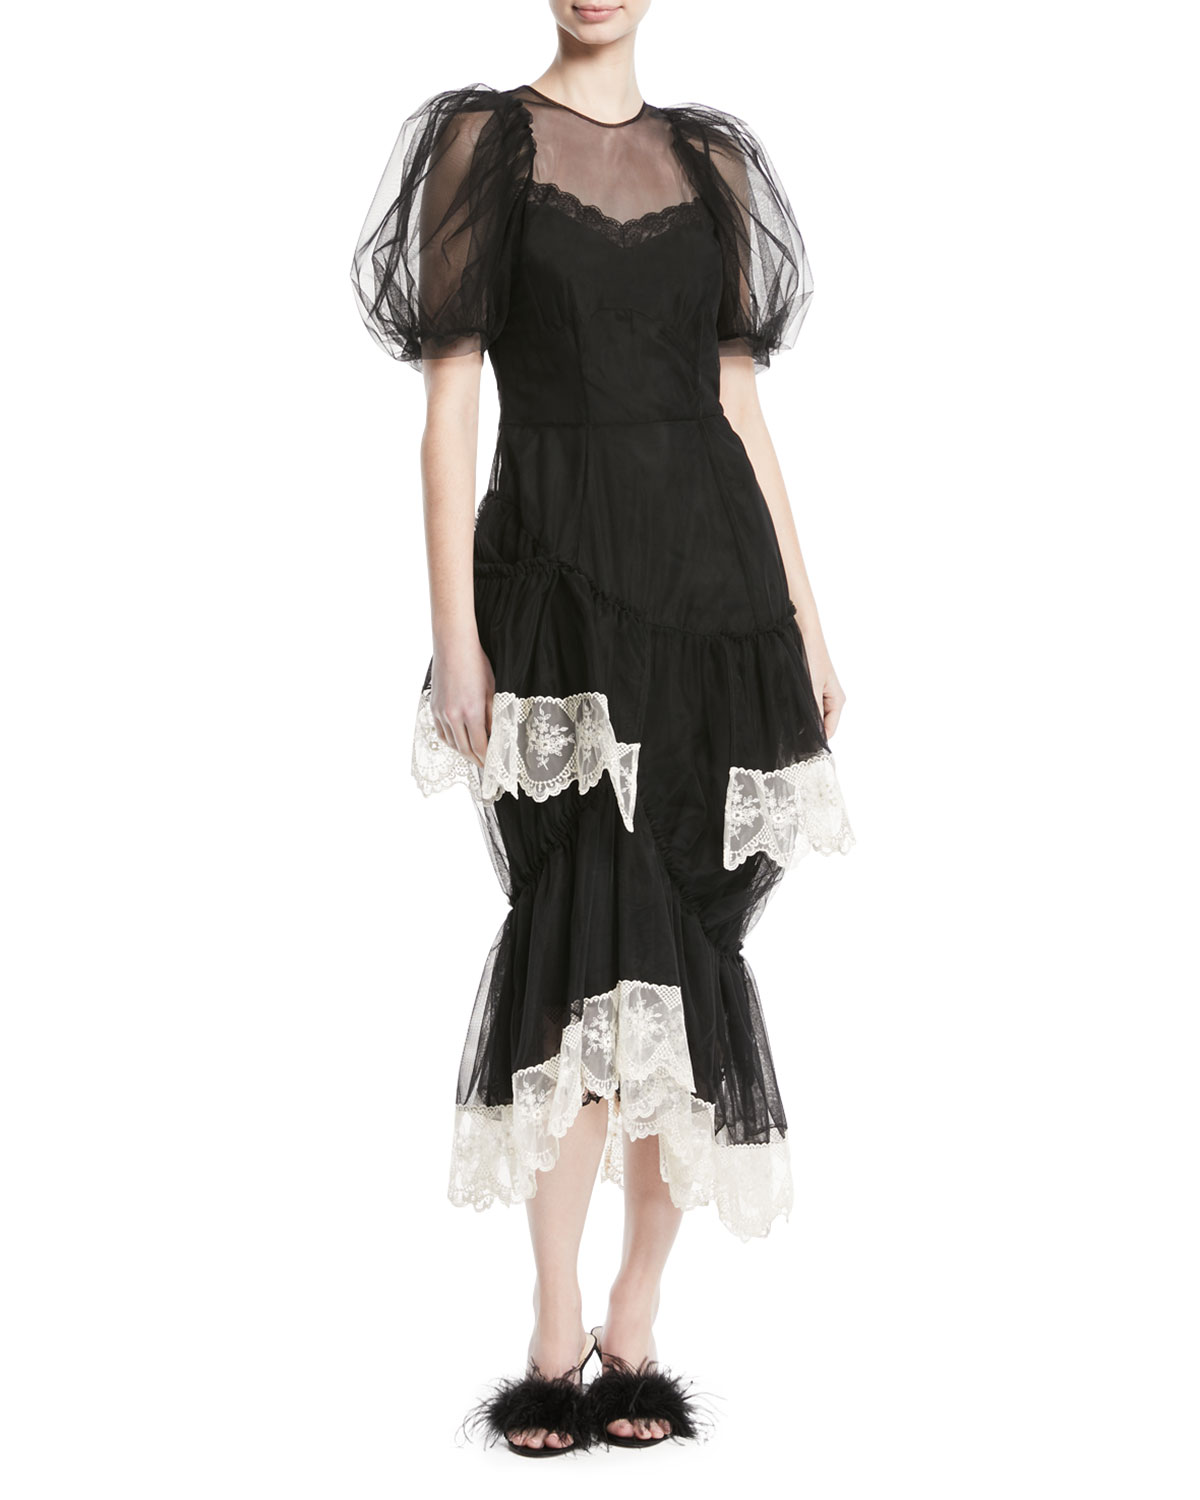 Puff-Sleeve Tulle Dress with Lace Trim